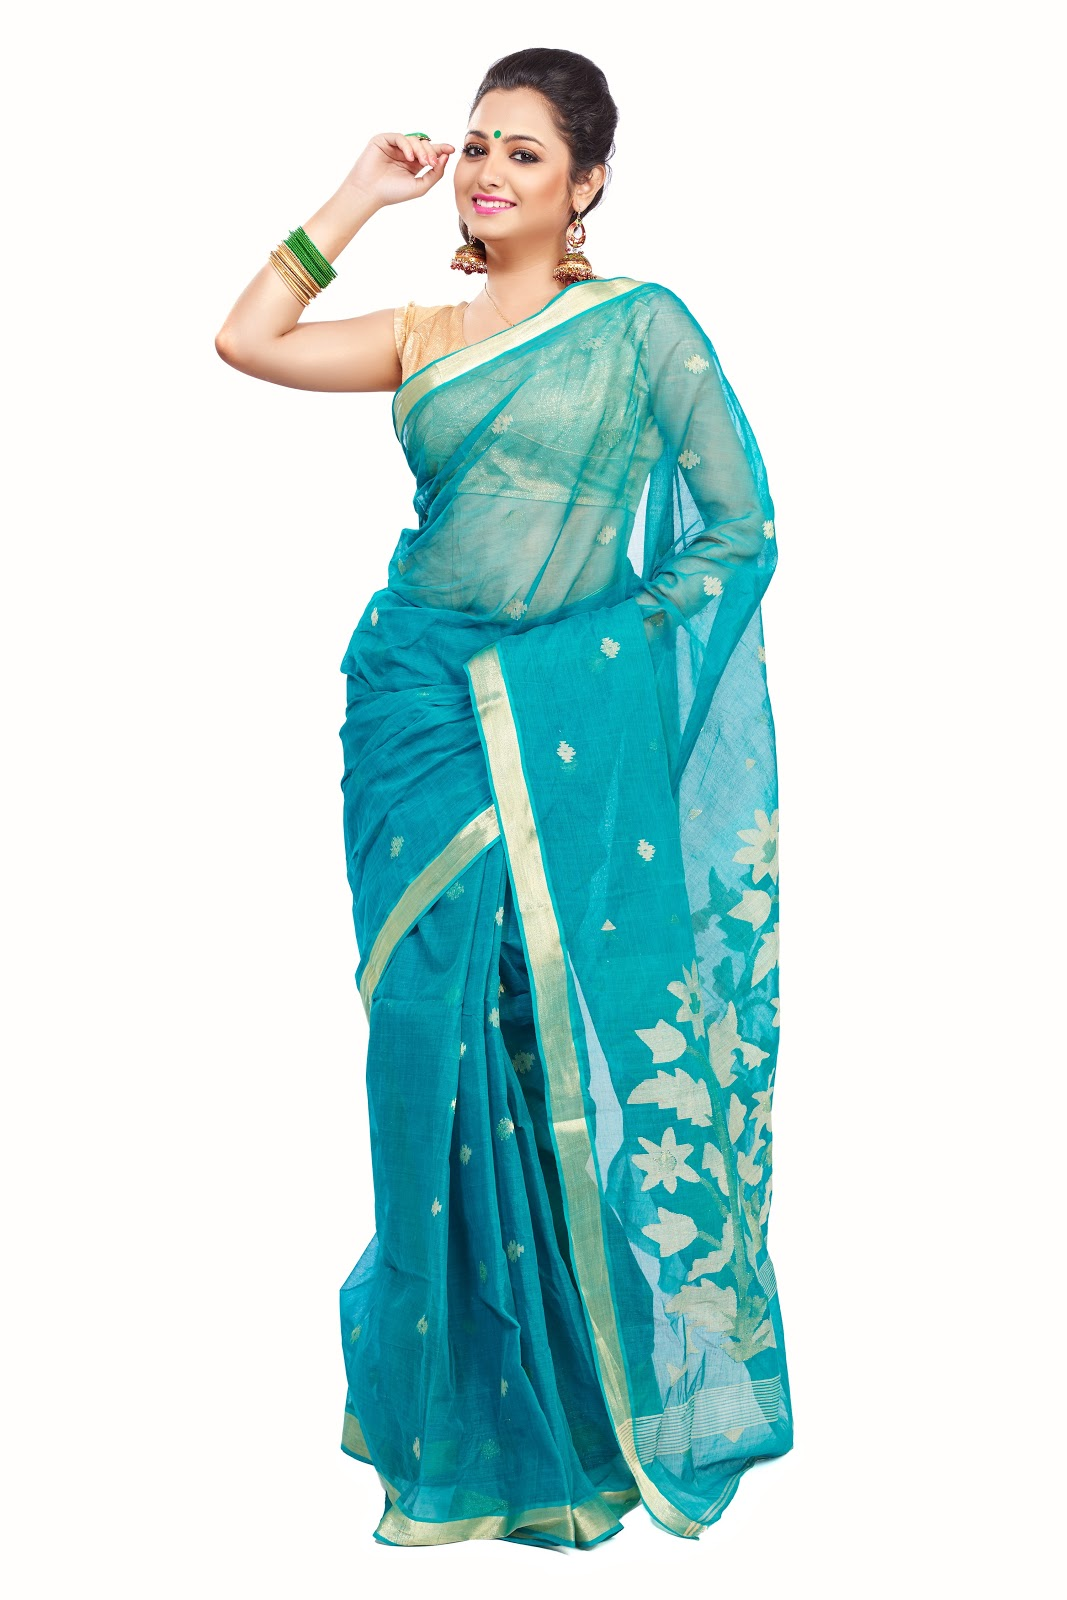 Wear a Sari According to the Party, Occasion or Event - Makeup ...